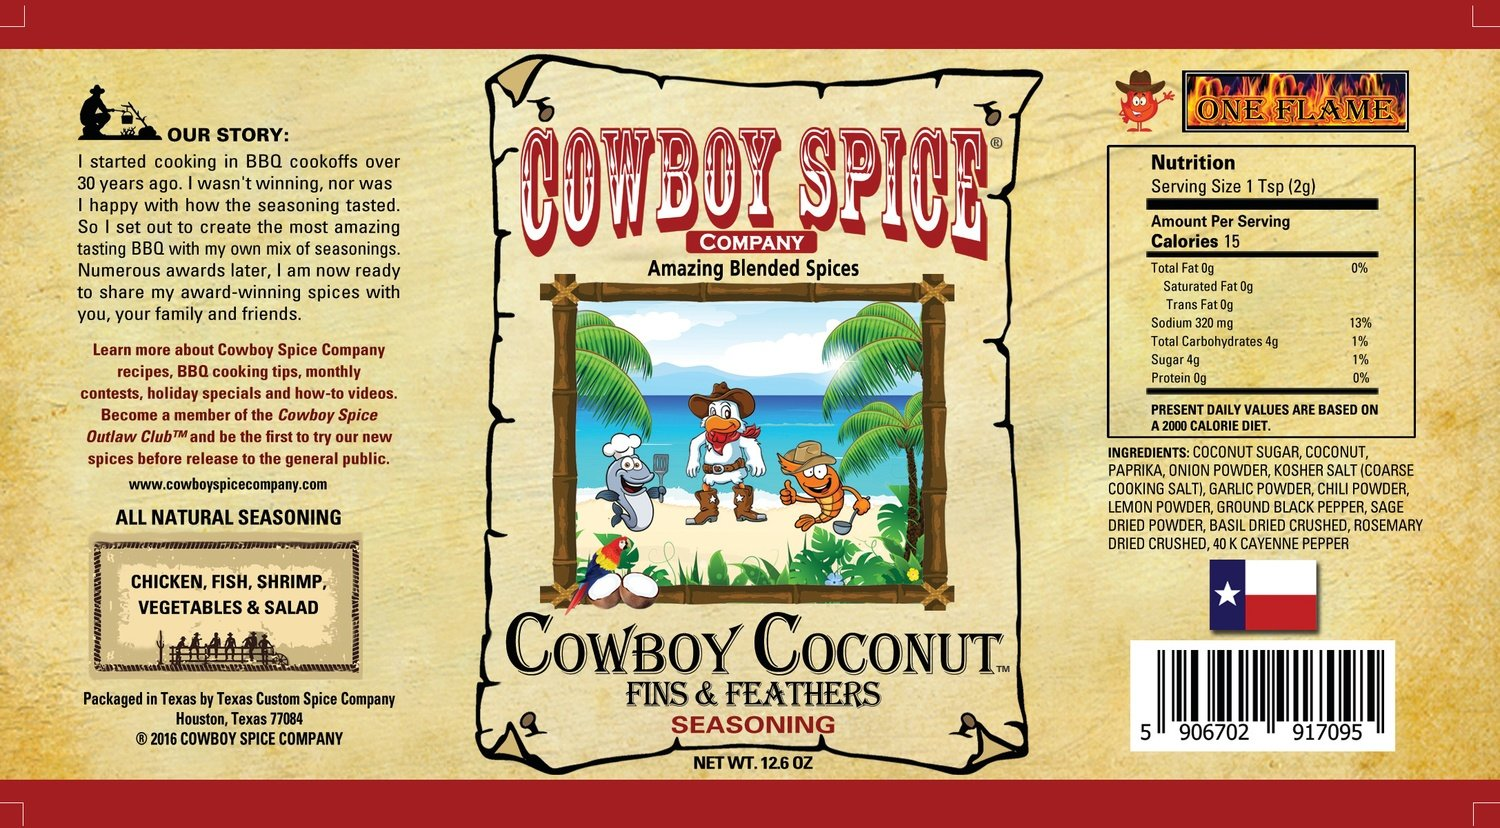 Cowboy Coconut Fins & Feathers ( AMAZING ON CHICKEN,FISH SHRIMP  WESATHER  YOU GRILL FRY OR BAKE WITH ONE OF MY FAVORITES)